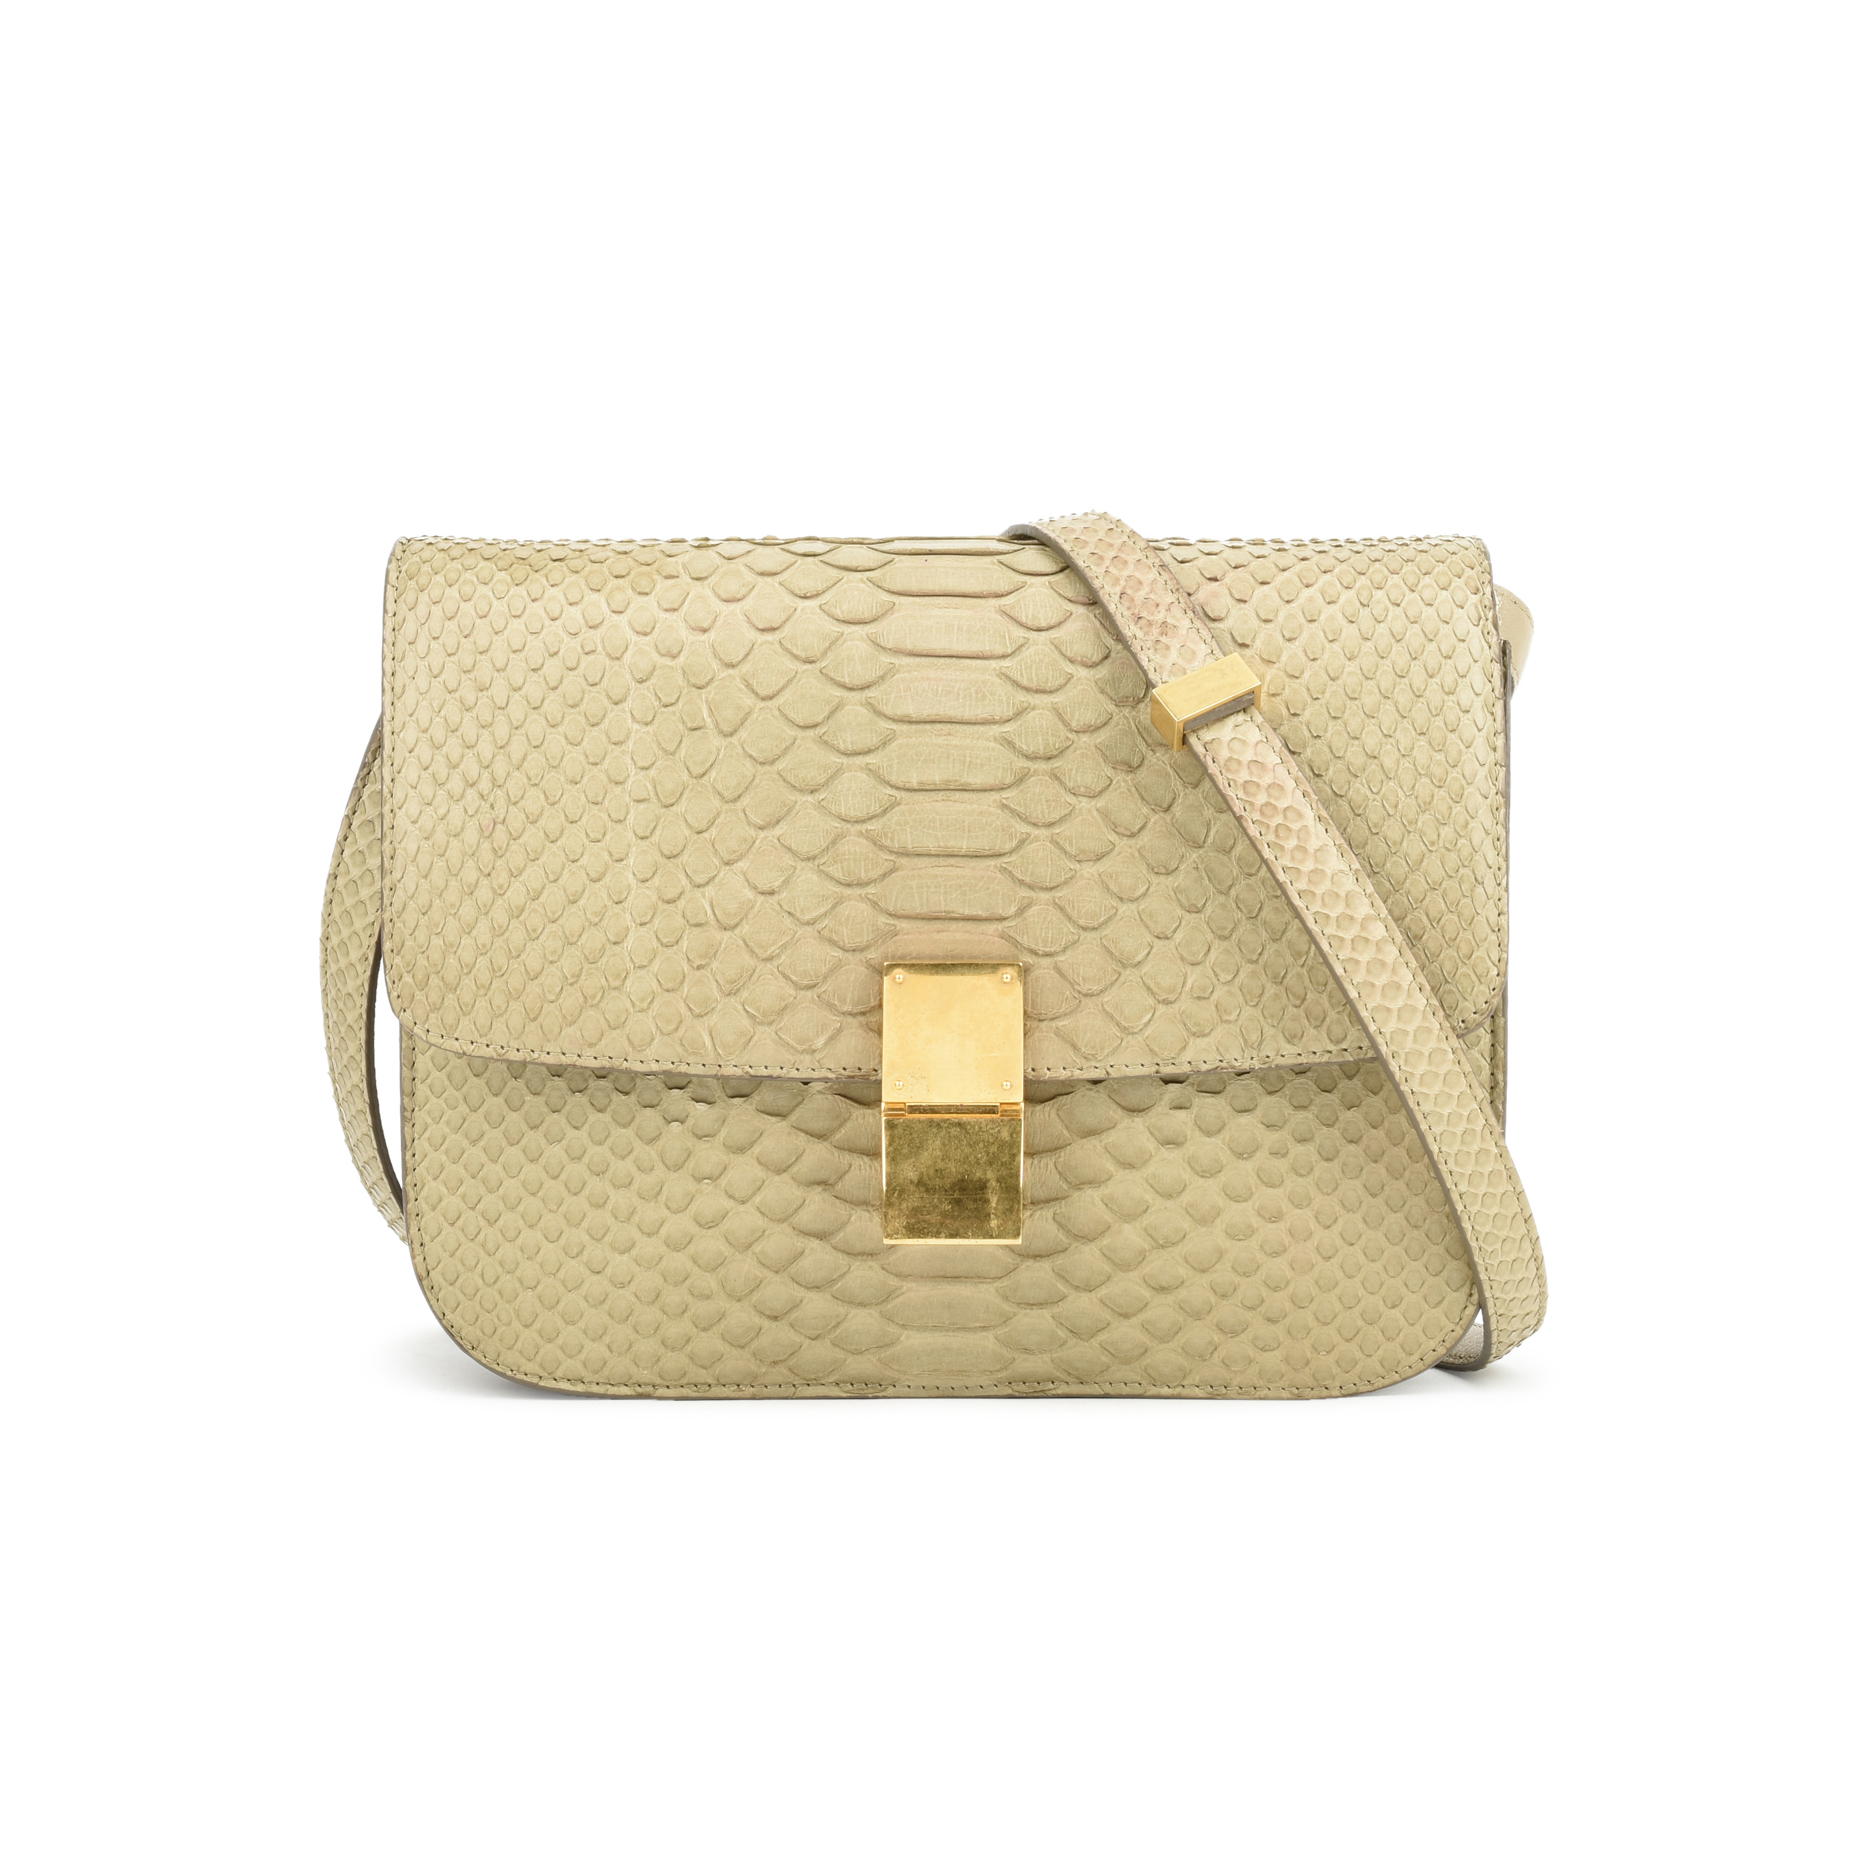 6cc4a2b54b6 Authentic Pre Owned Céline Python Box Bag (PSS-048-00126)   THE FIFTH  COLLECTION®